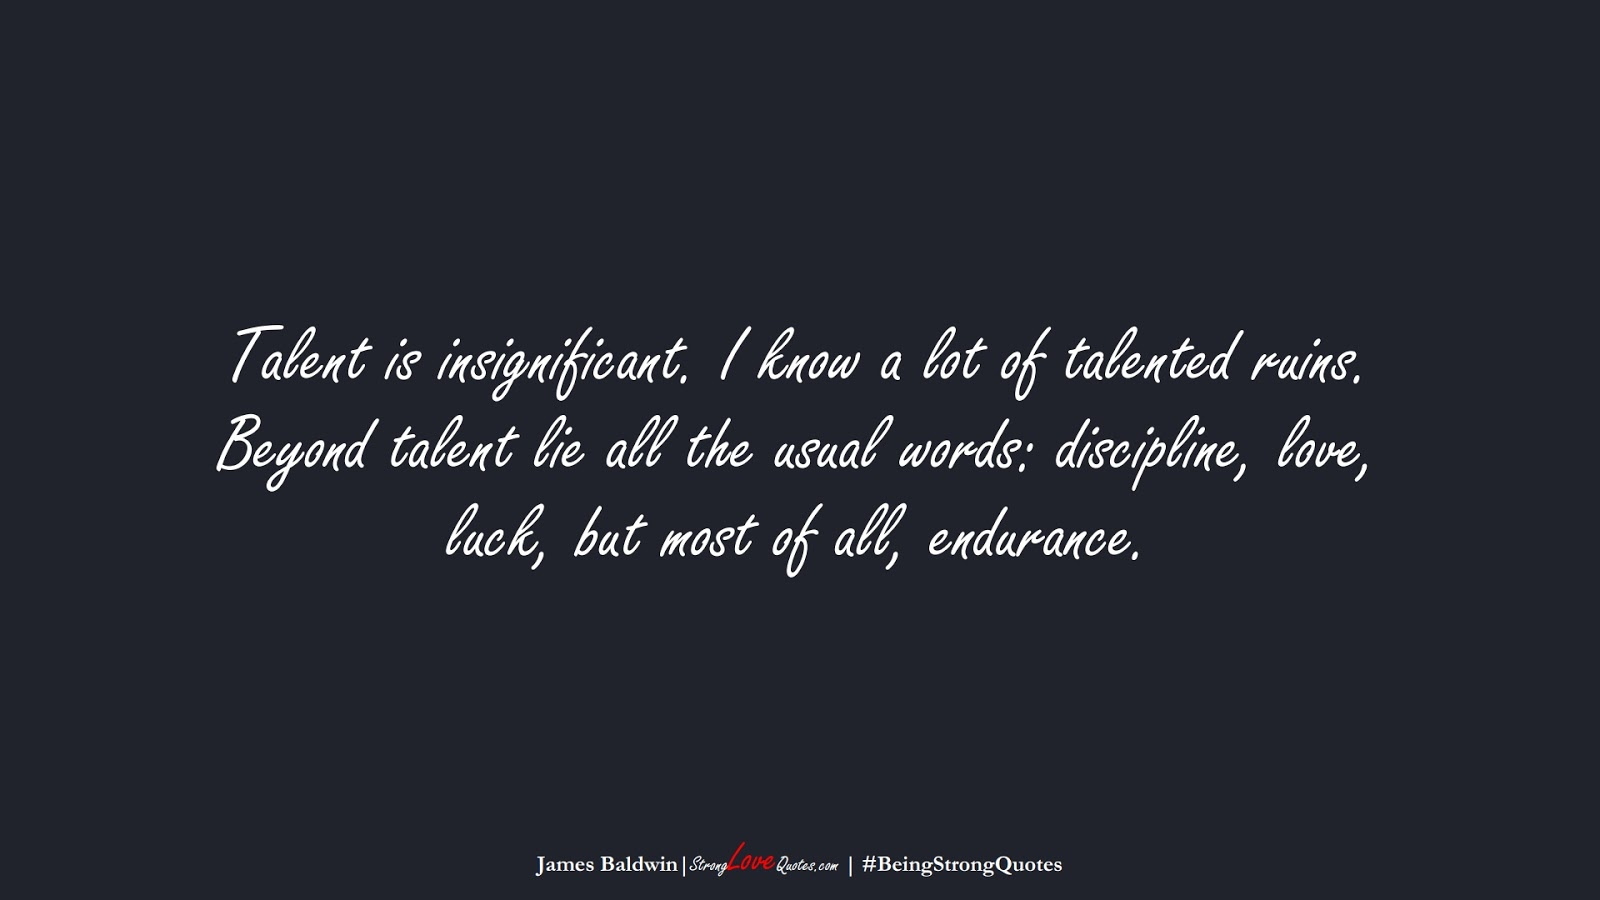 Talent is insignificant. I know a lot of talented ruins. Beyond talent lie all the usual words: discipline, love, luck, but most of all, endurance. (James Baldwin);  #BeingStrongQuotes